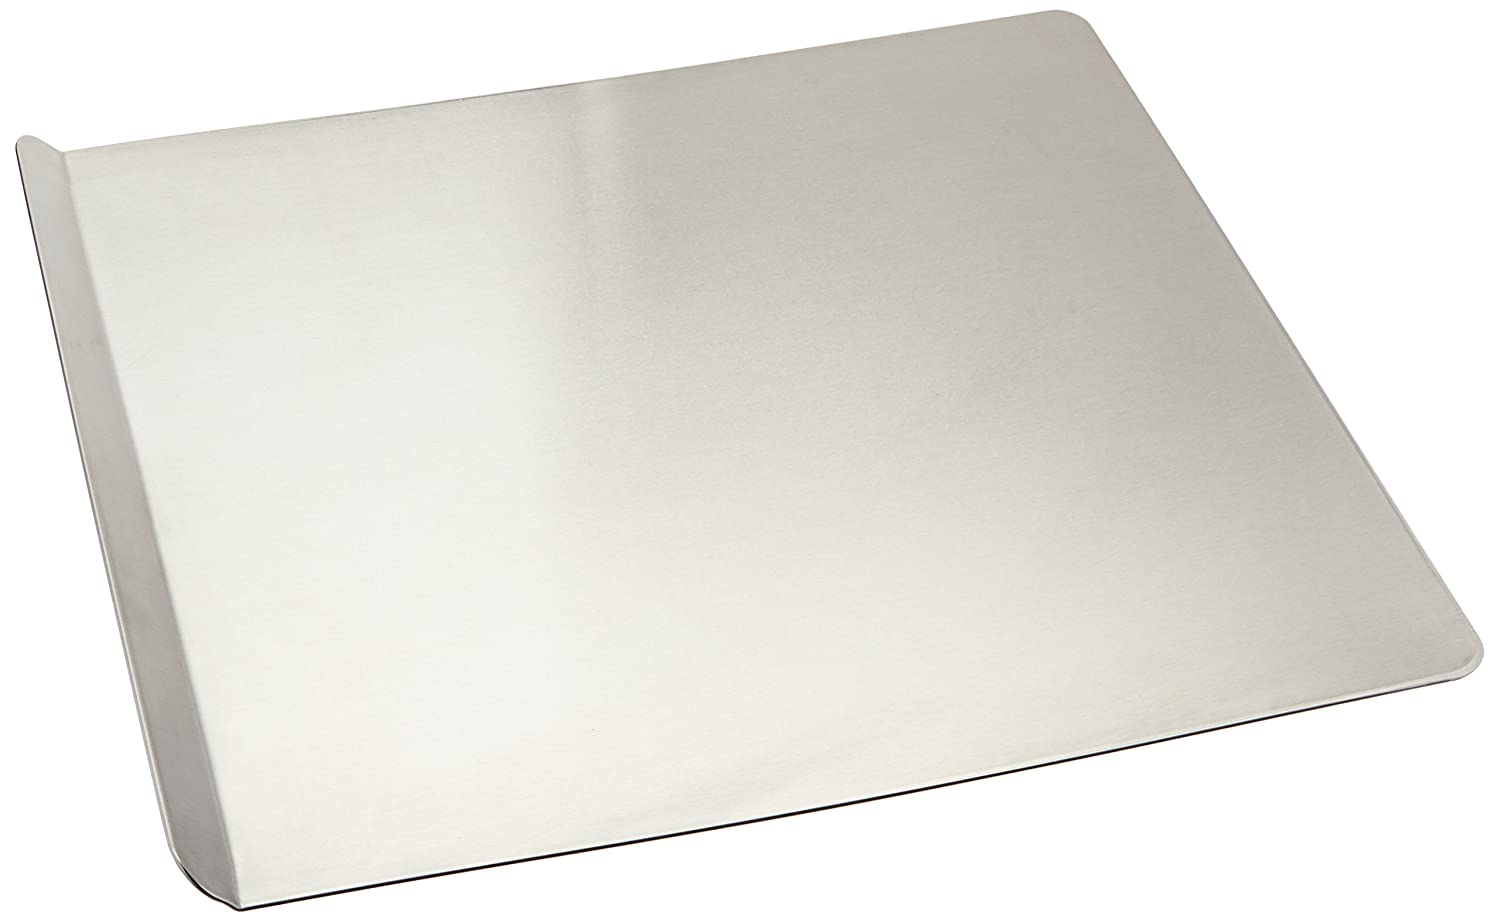 AirBake Natural Cookie Sheet, 16 x 14 in